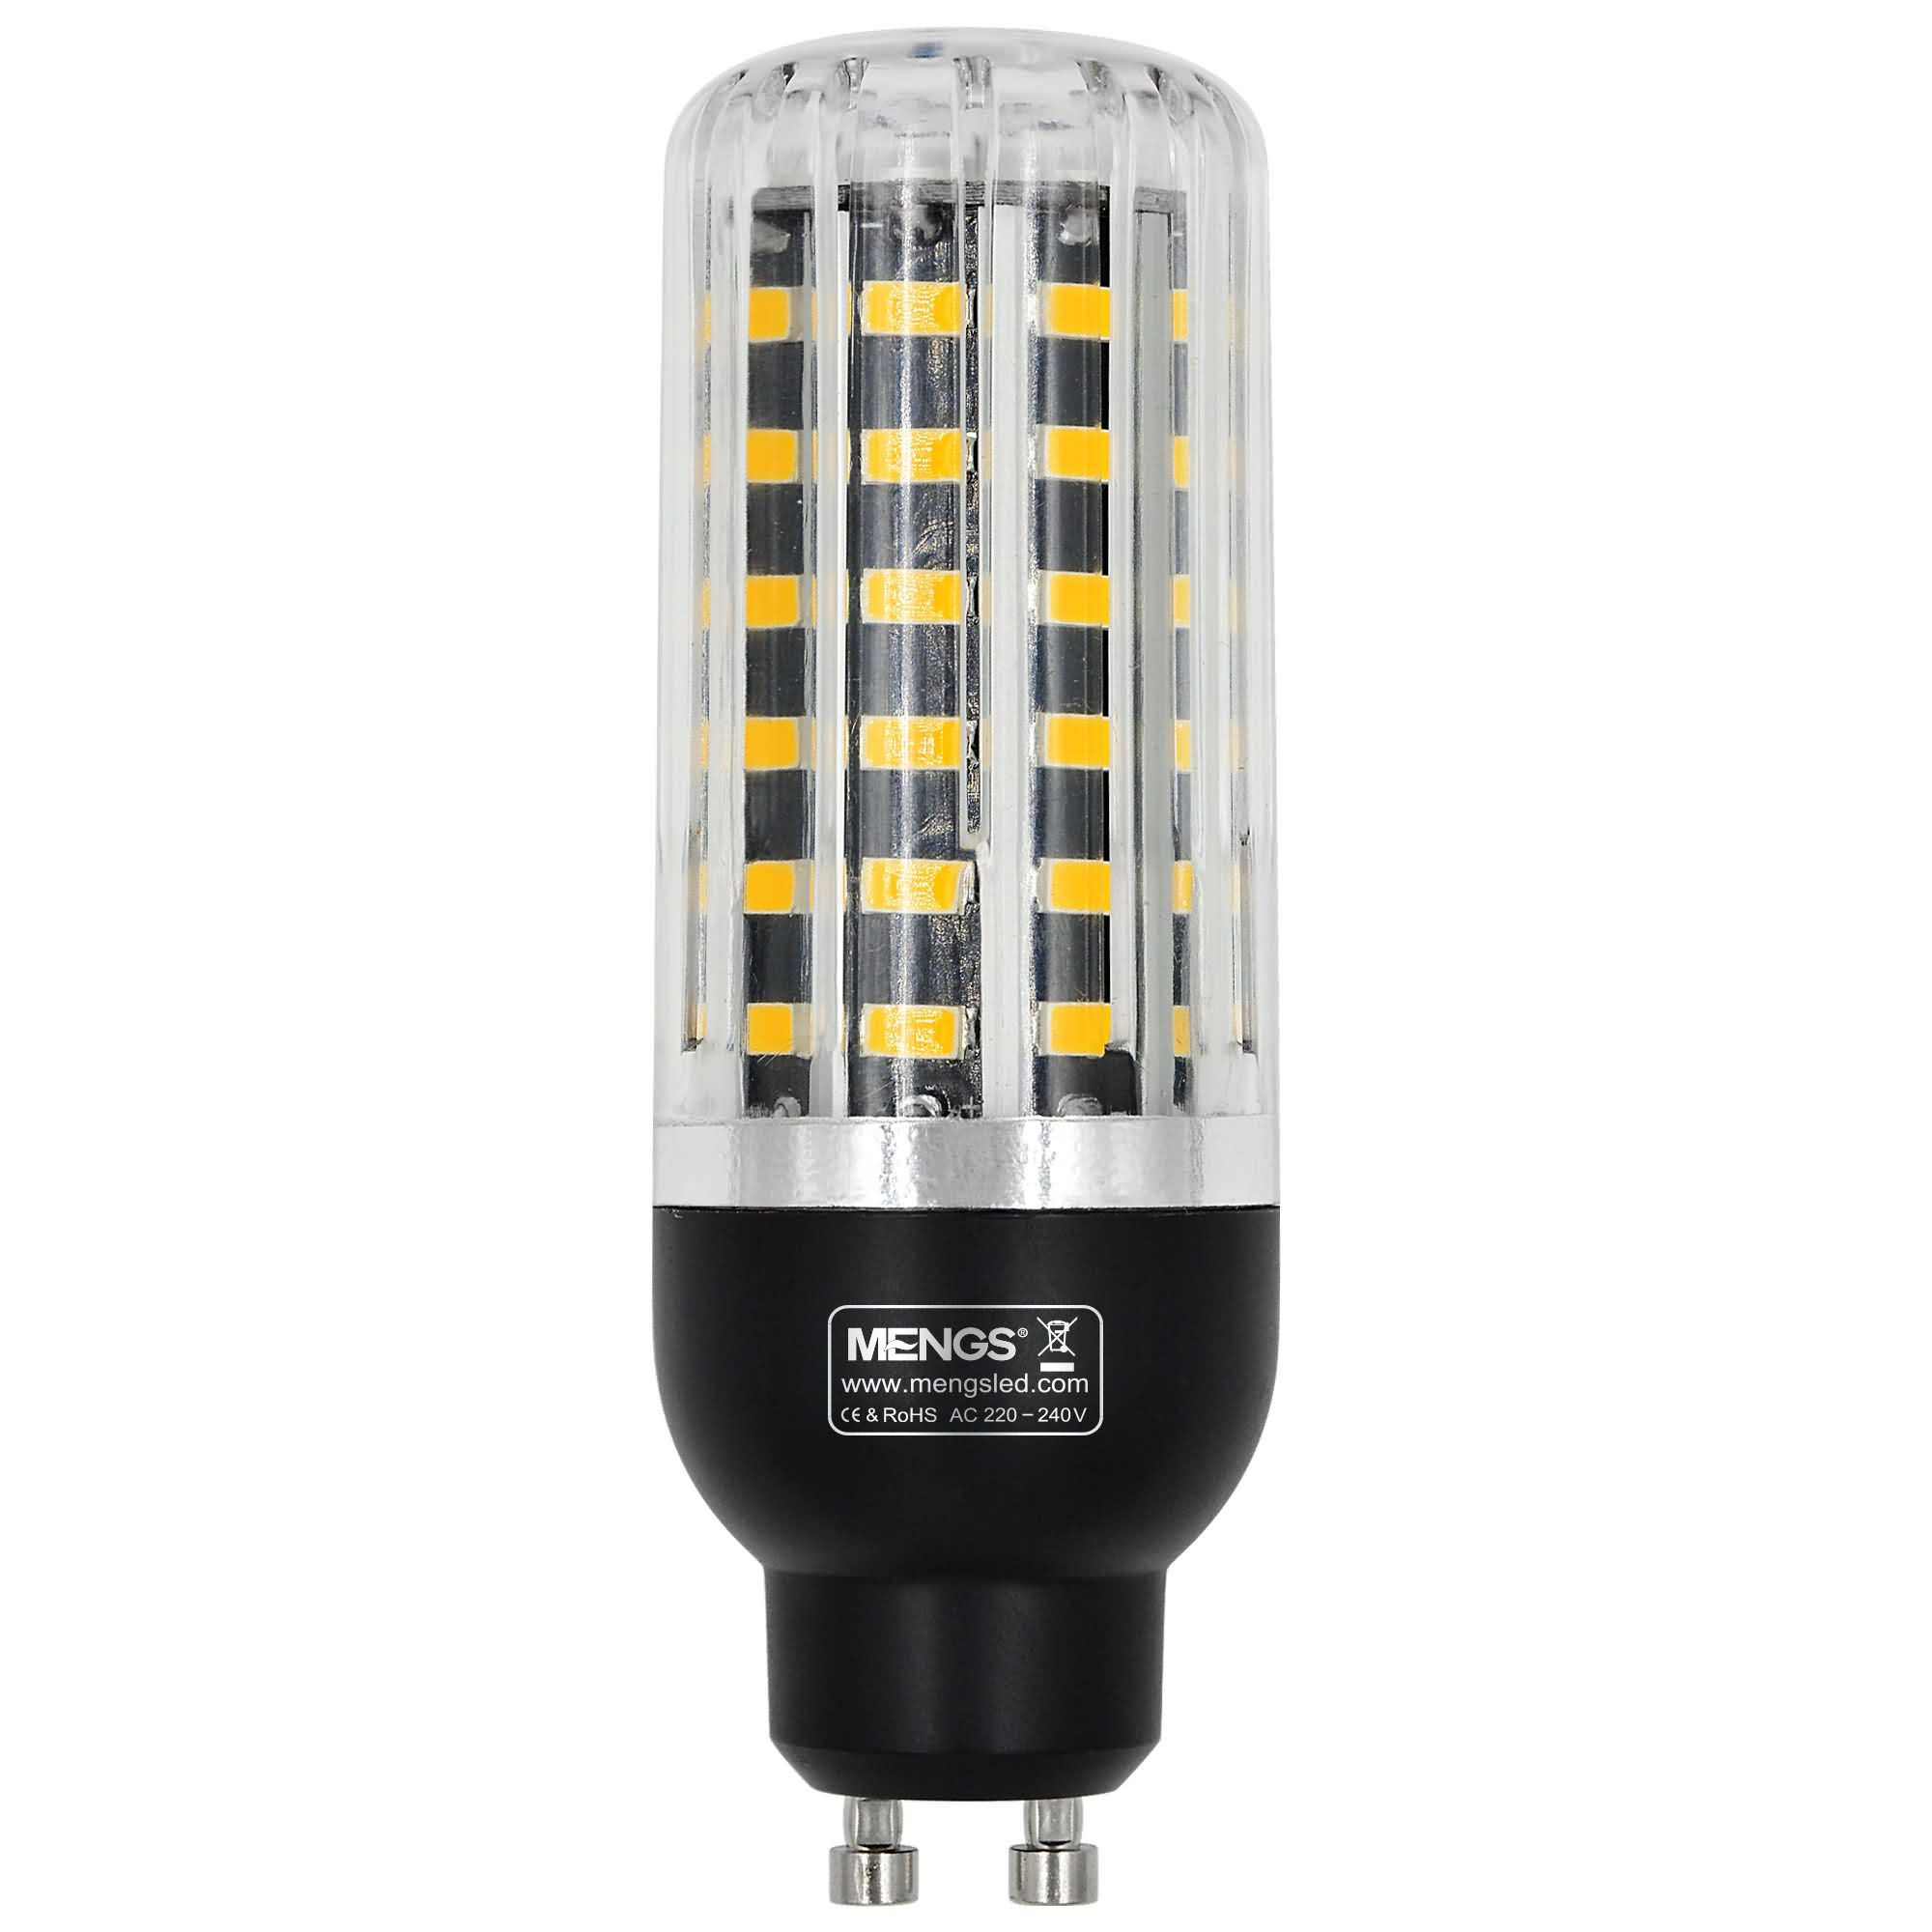 MENGS® GU10 8W LED Corn Light 56x 5733 SMD With Heat Sink LED Bulb Lamp in Cool White Energy-Saving Light